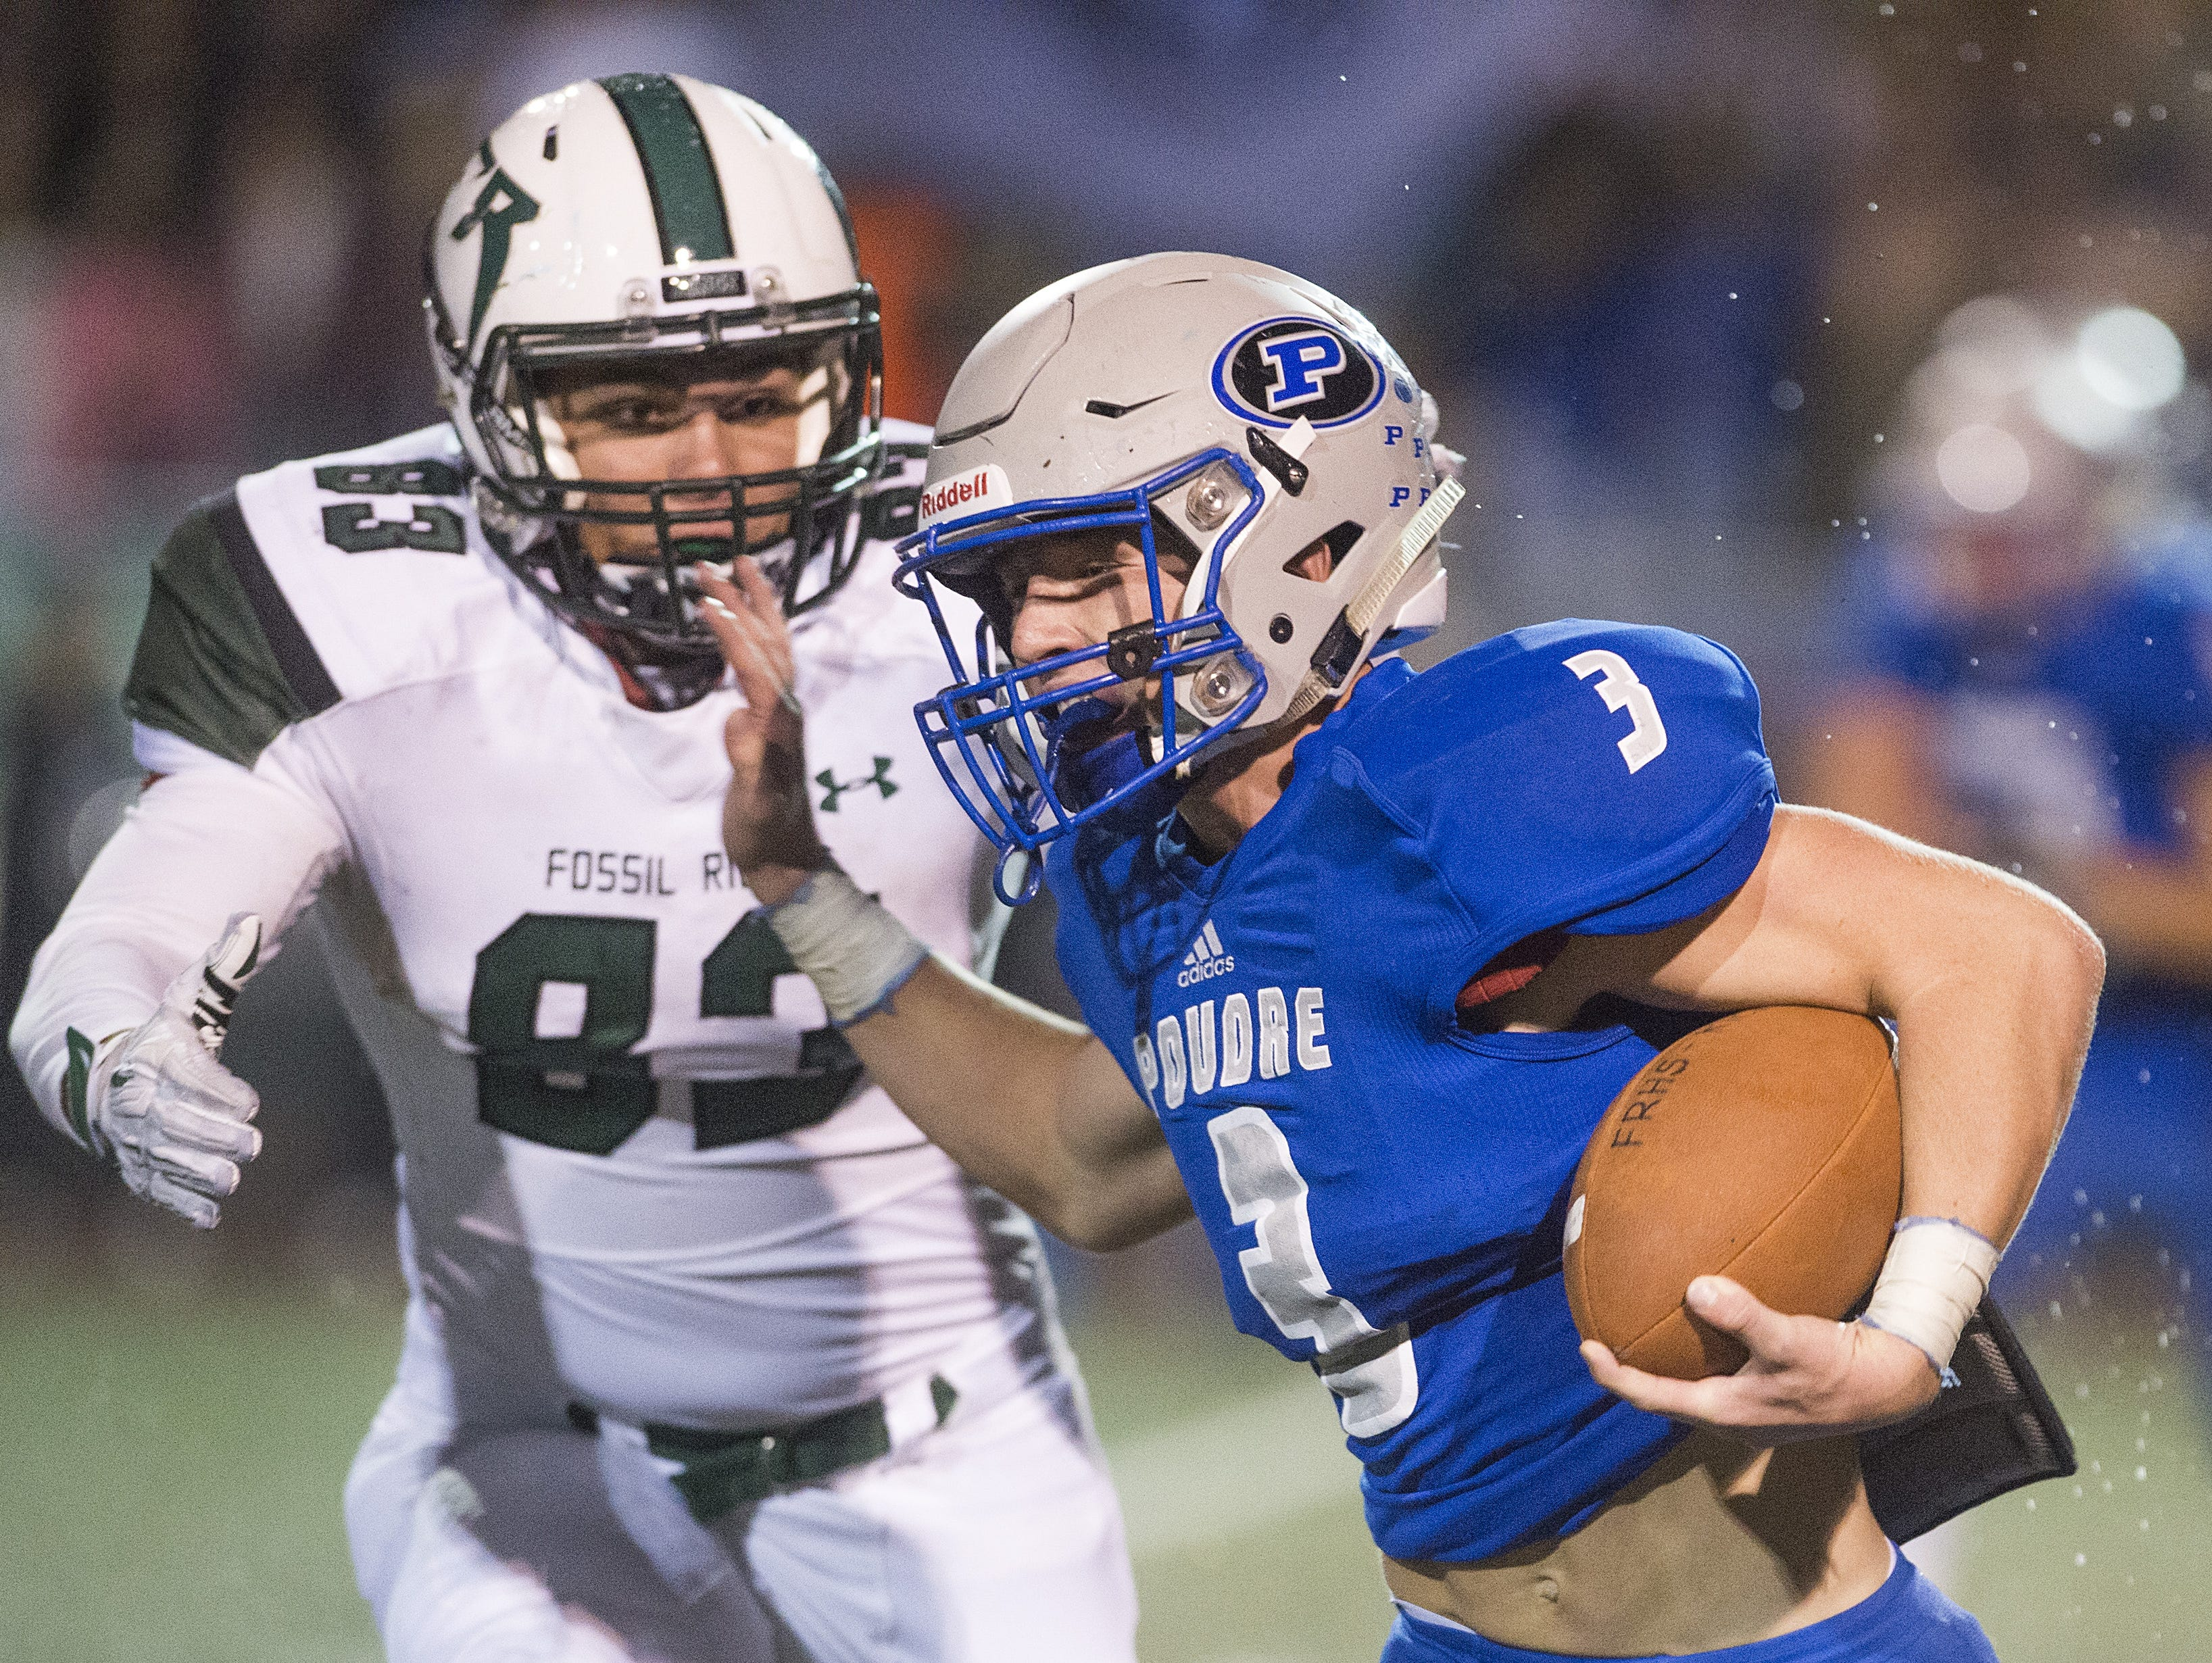 Dylan Marsh of Poudre High School tries to evade Fossil Ridge's Owen Arkin during a game last season. The two teams meet again at 7 p.m. Friday.